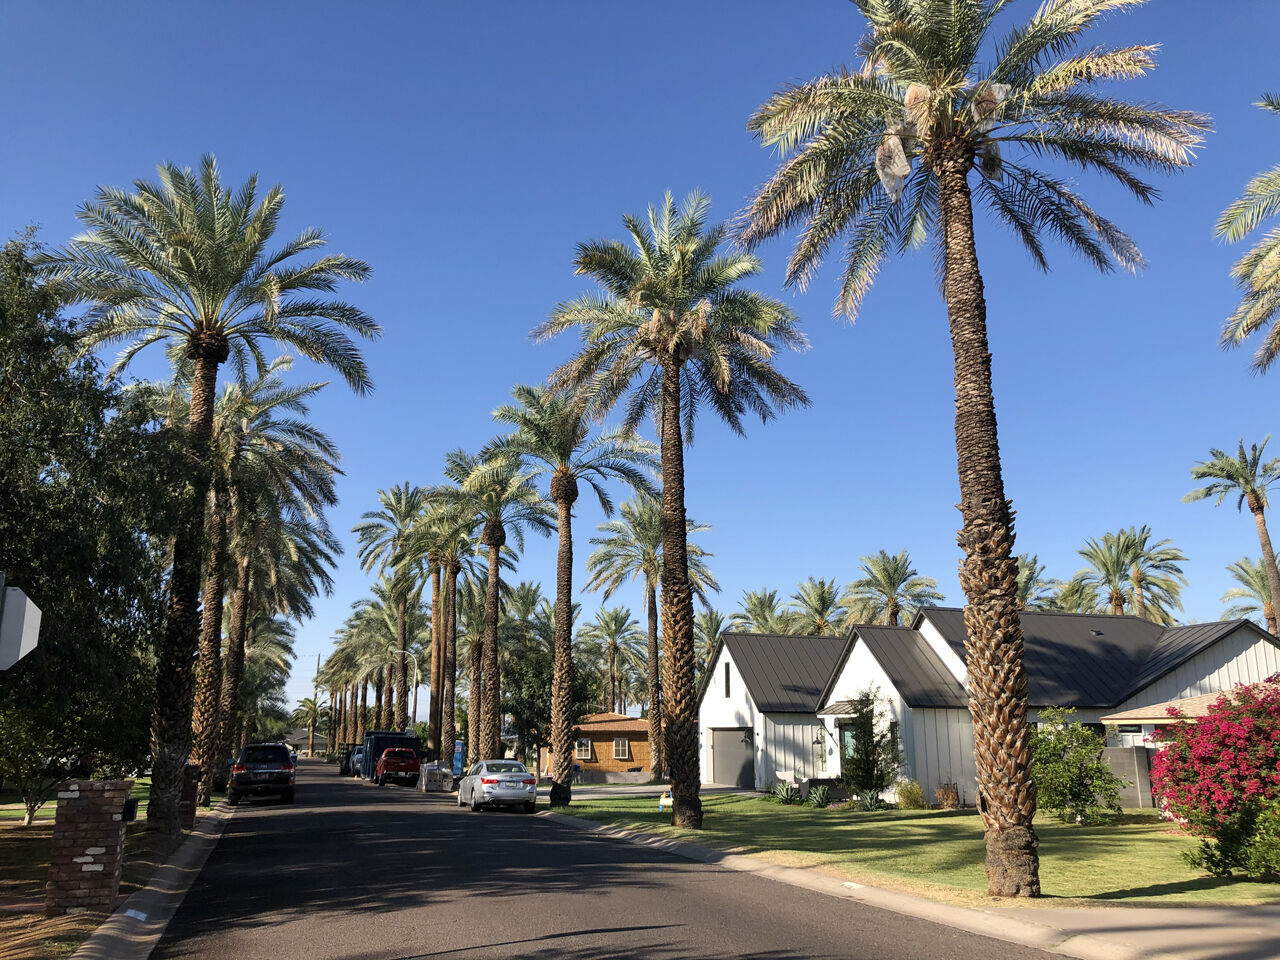 The towering date palms of Mountgrove pre-date the neighborhood.